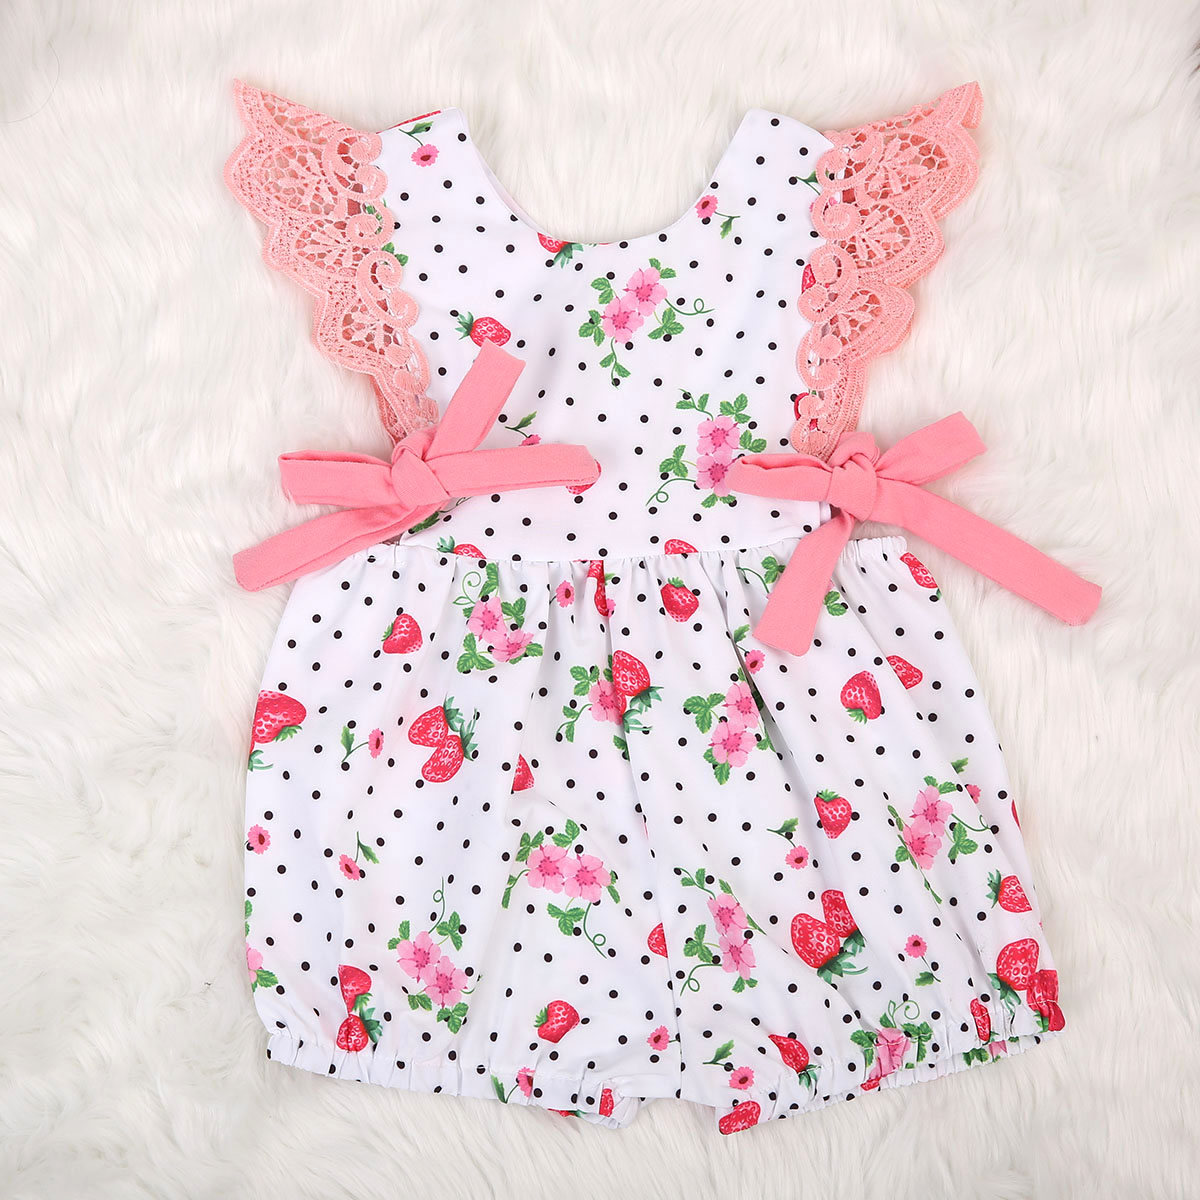 2017 Summer Newborn Cute Baby Girls Strawberry   Romper   Sweet Bow tie Jumpsuit Outfit Sunsuit Clothes Sunsuit